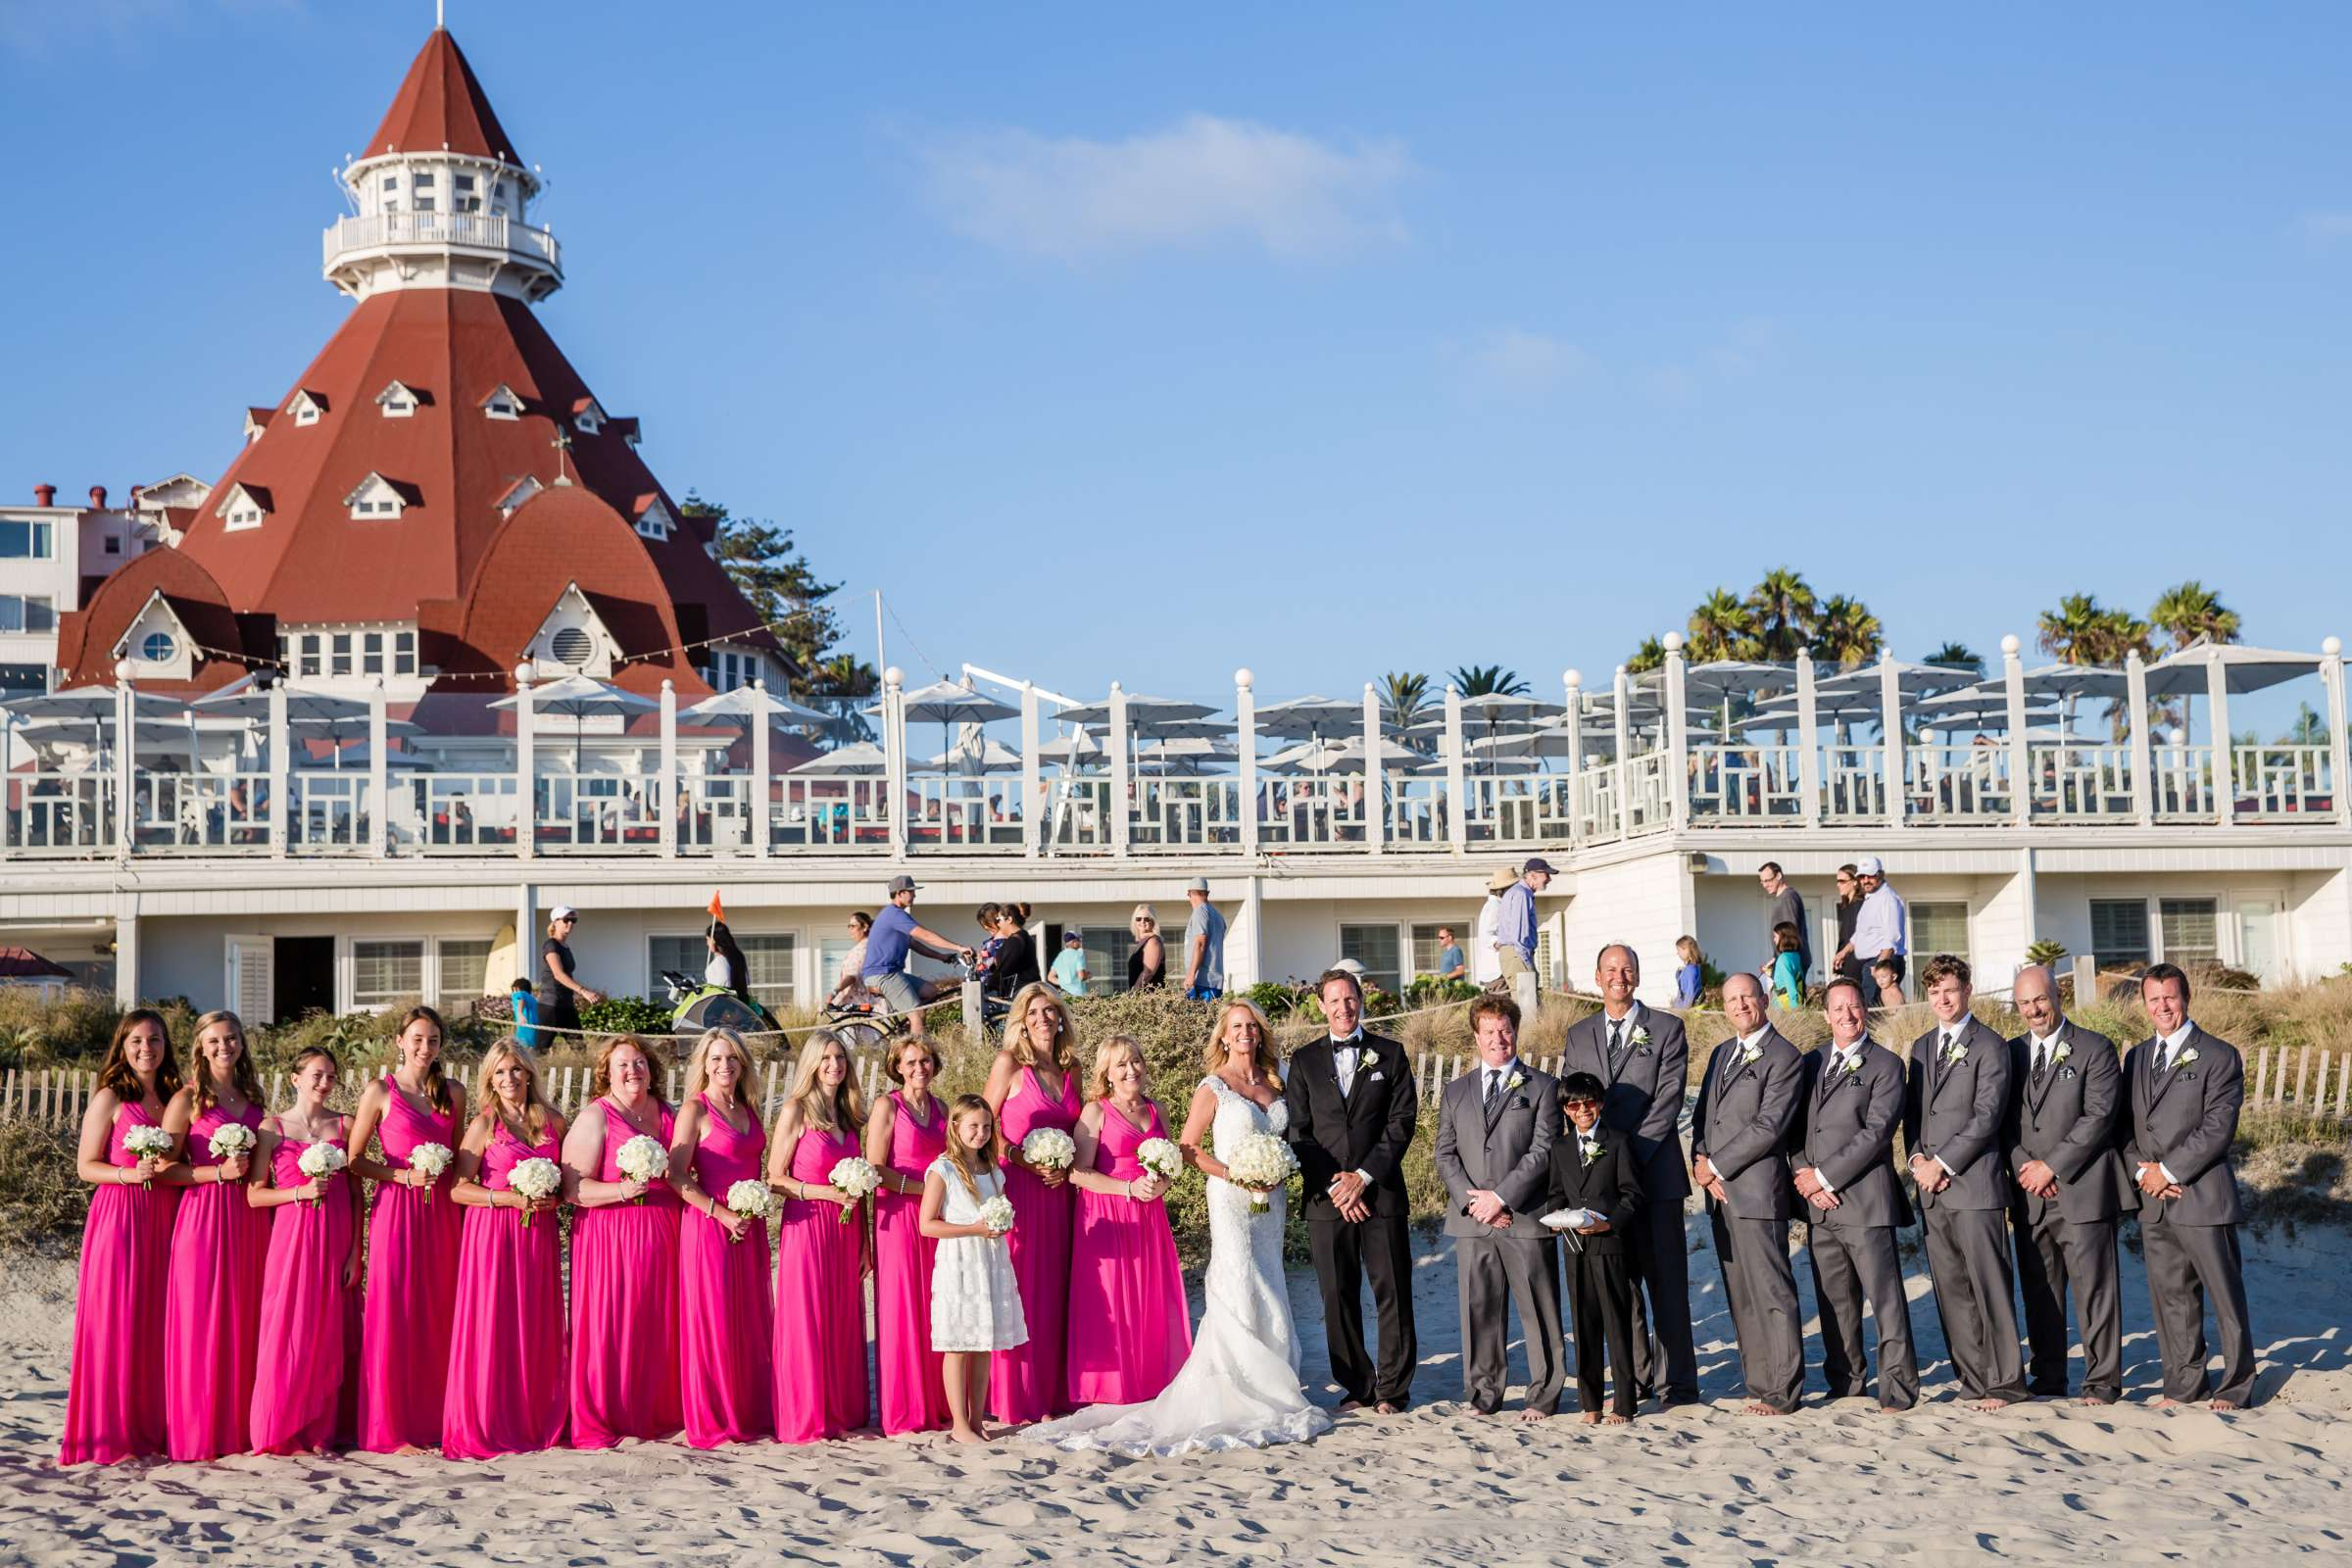 Hotel Del Coronado Wedding coordinated by Creative Affairs Inc, Diane and Paul Wedding Photo #17 by True Photography